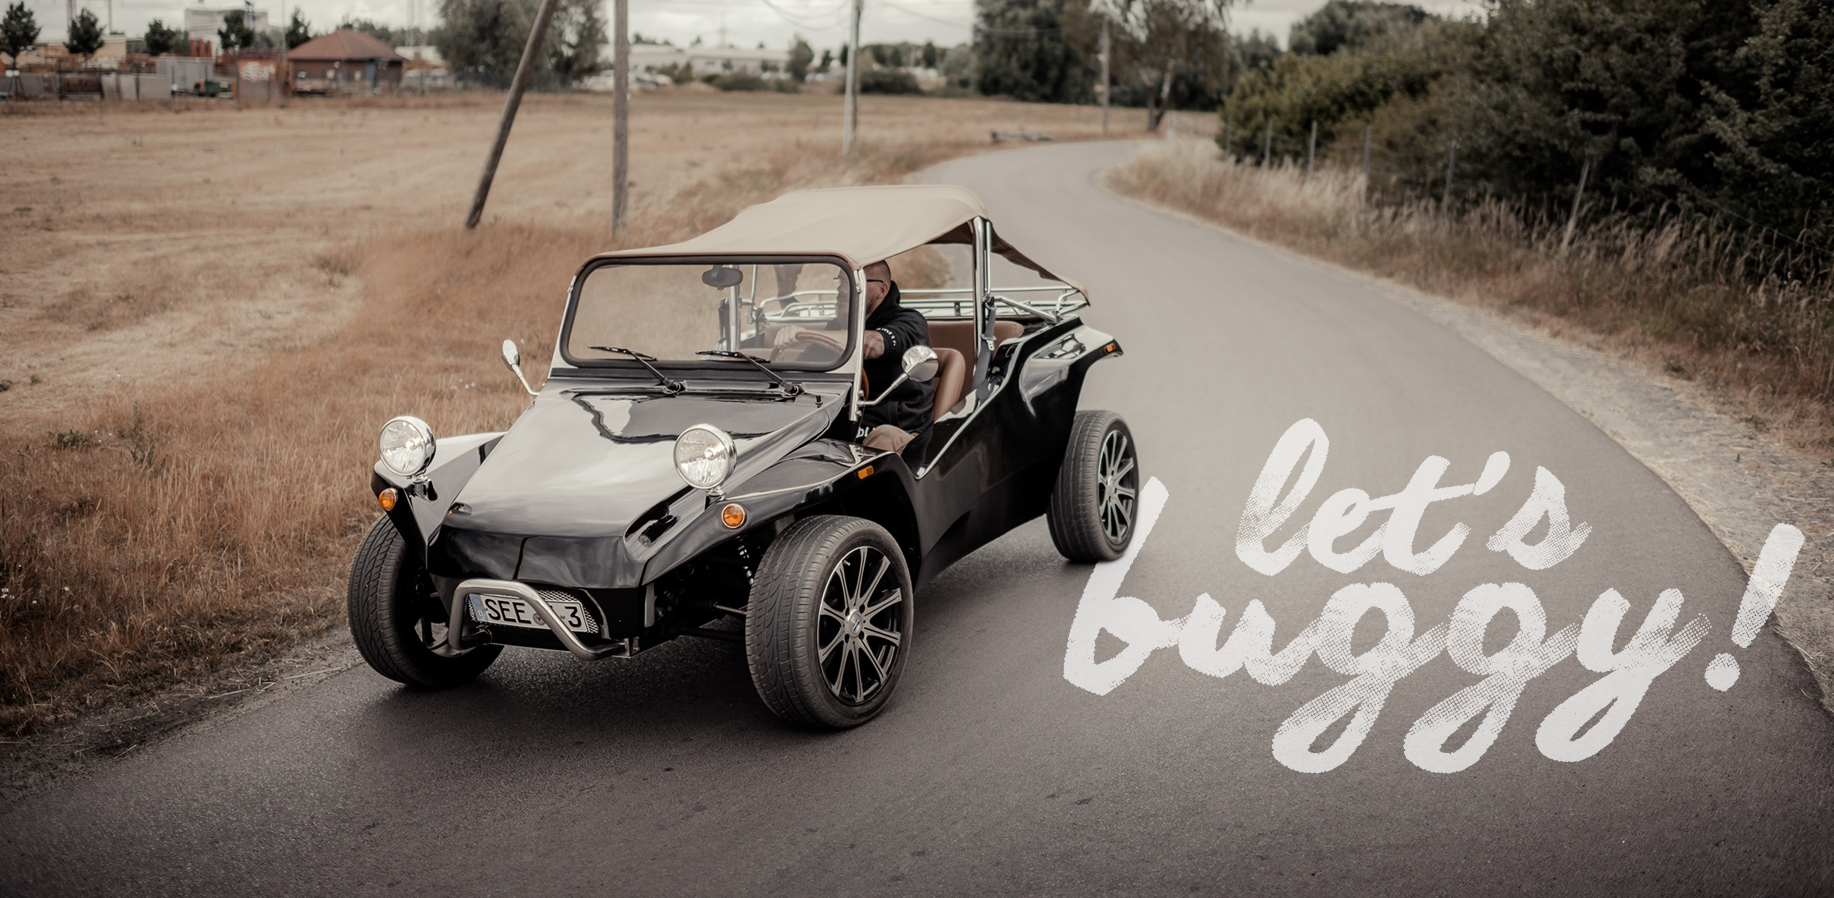 softgarage Quadix Vintage Buggy